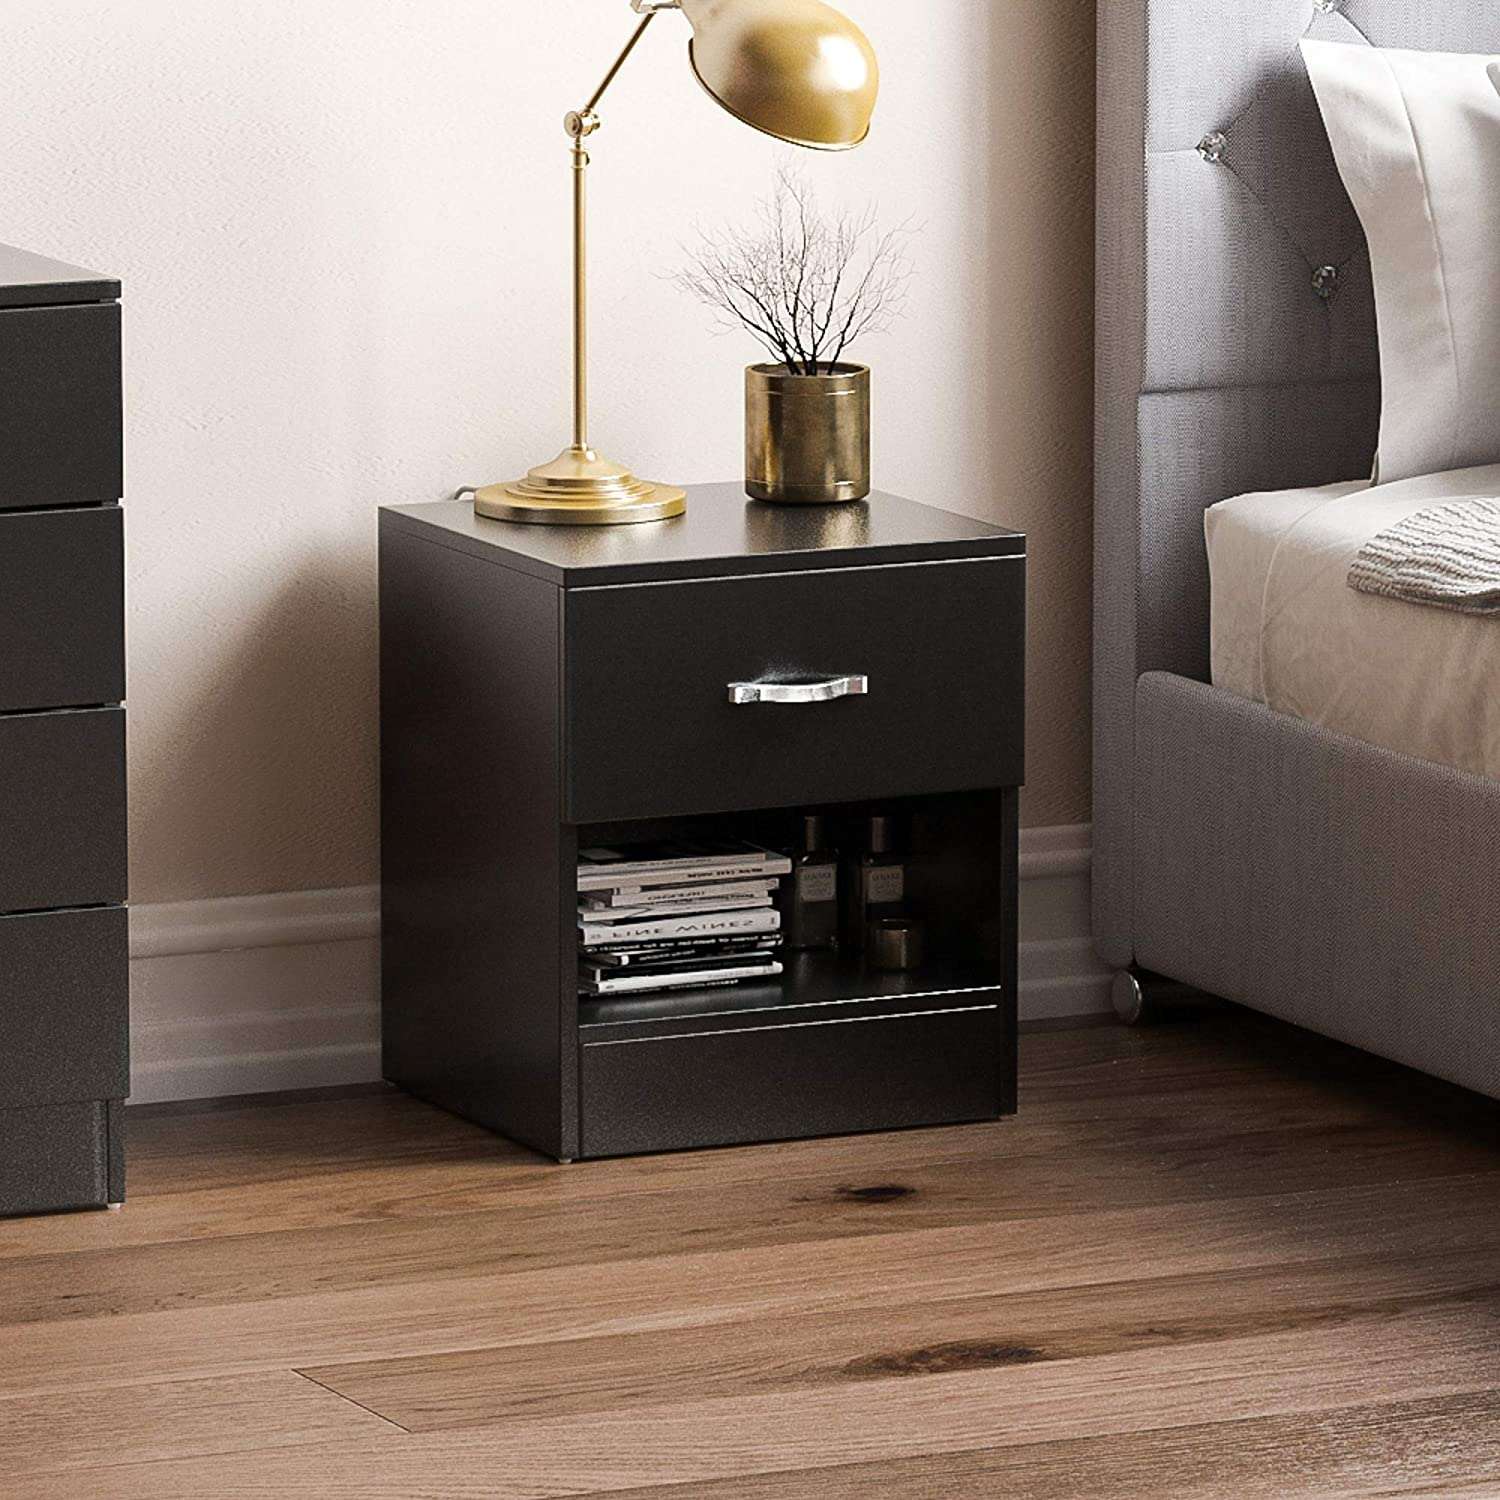 Vida Designs Black Bedside Cabinet 1 Drawer With Metal Handles And Runners Unique Anti Bowing Drawer Support Riano Bedroom Furniture Amazon Co Uk Kitchen Home